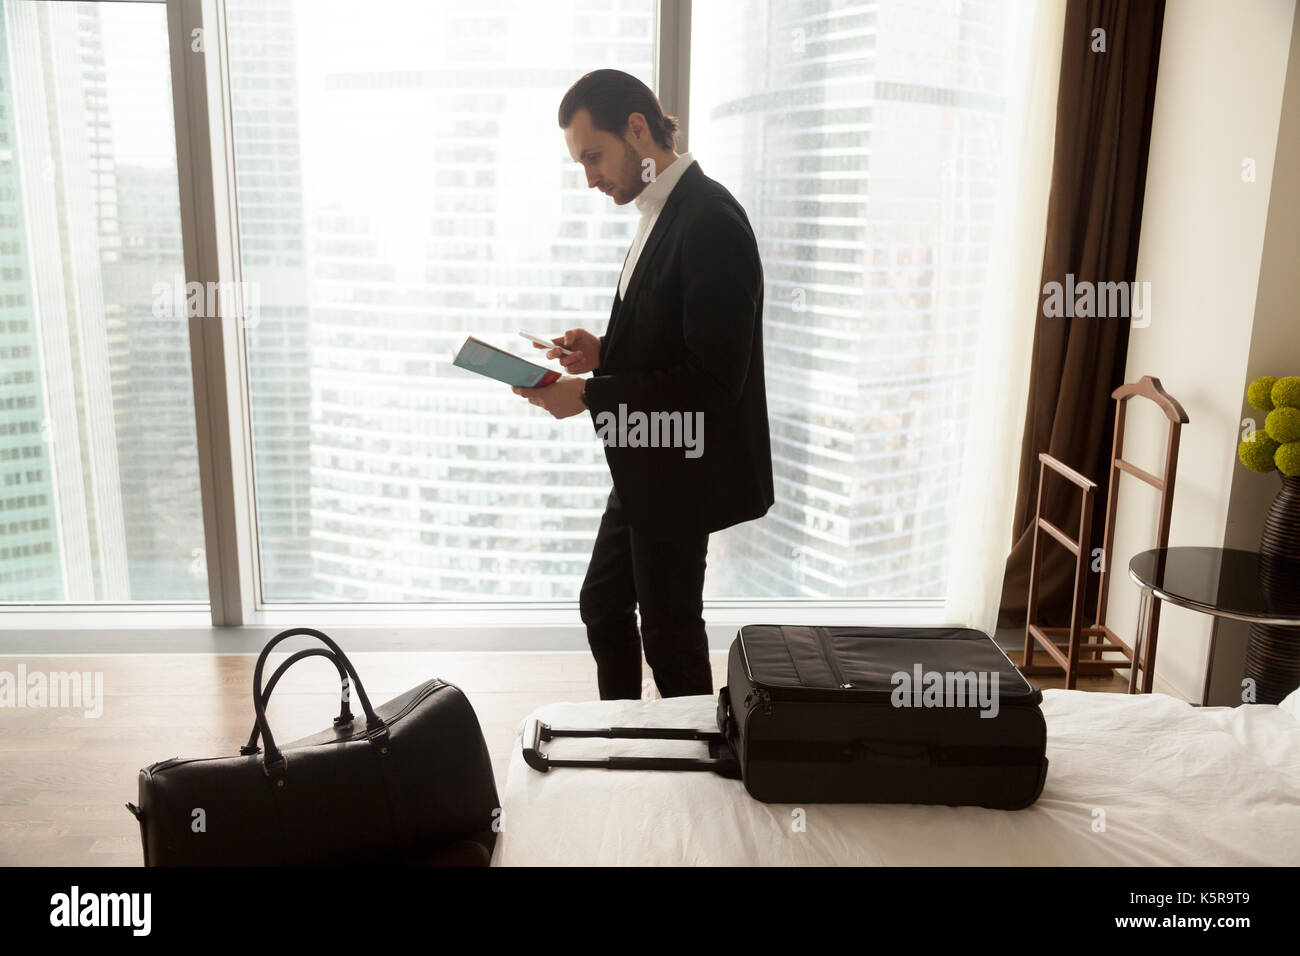 Businessman holds guide brochure and calls taxi or room service. - Stock Image